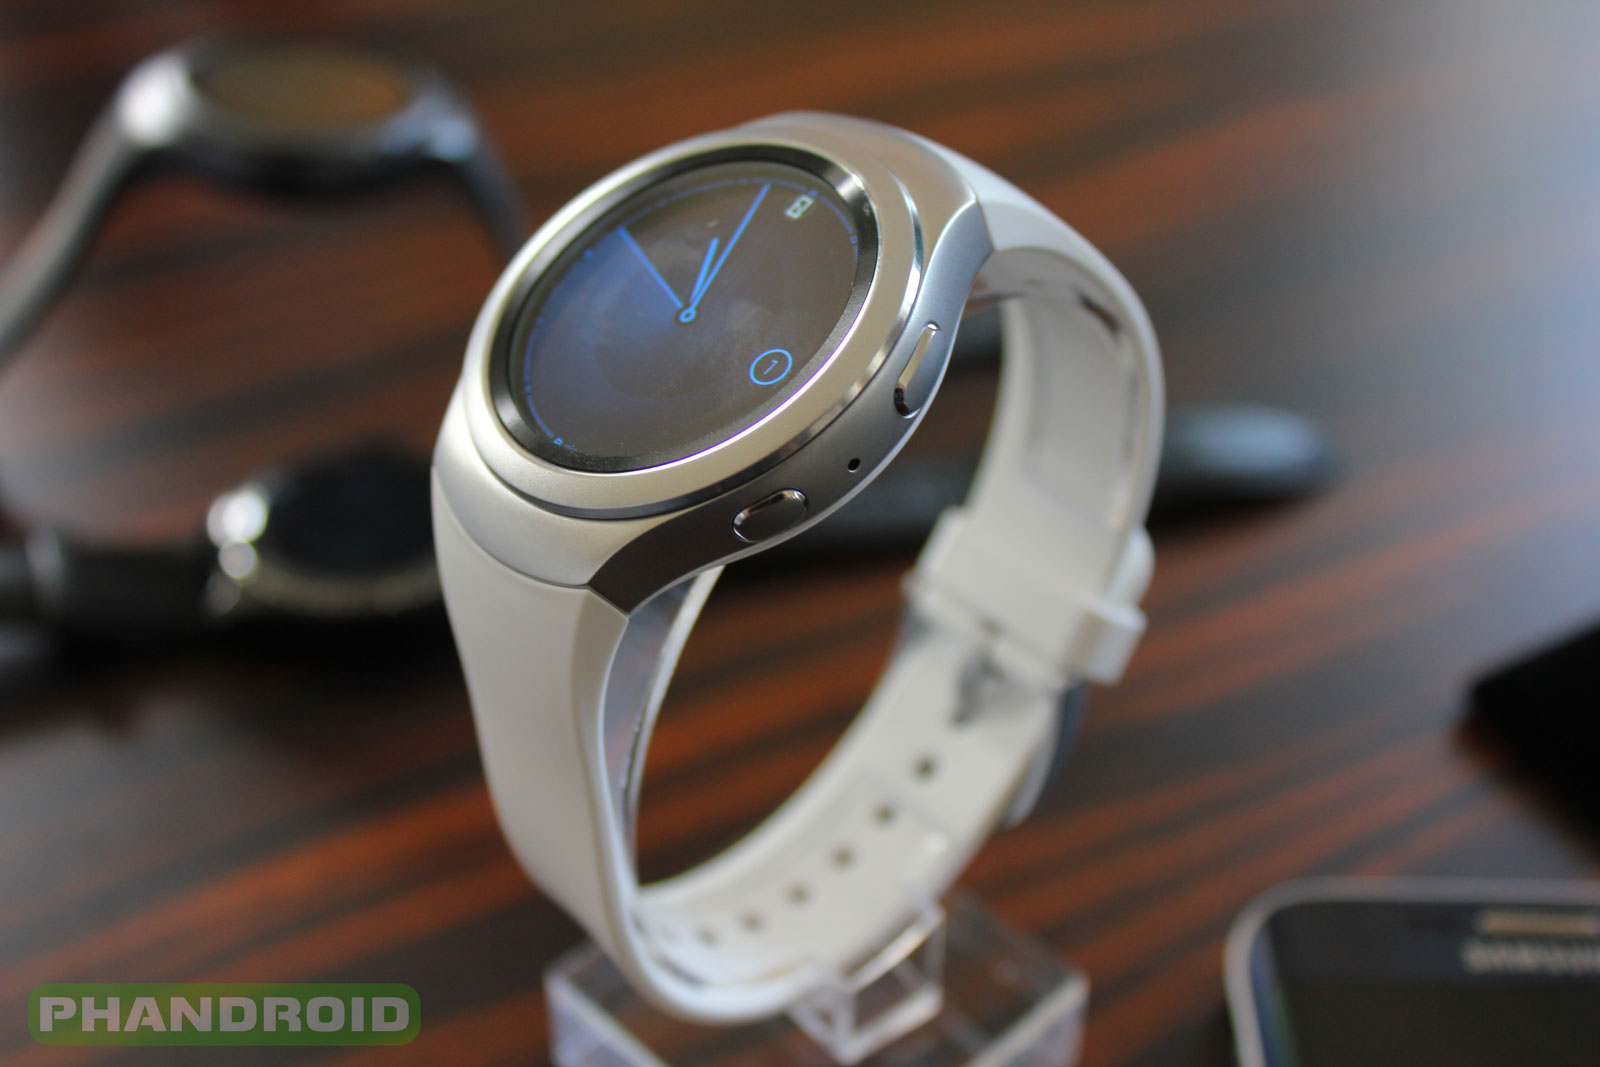 Samsung Gear S2 gets a big software update, here's what's new